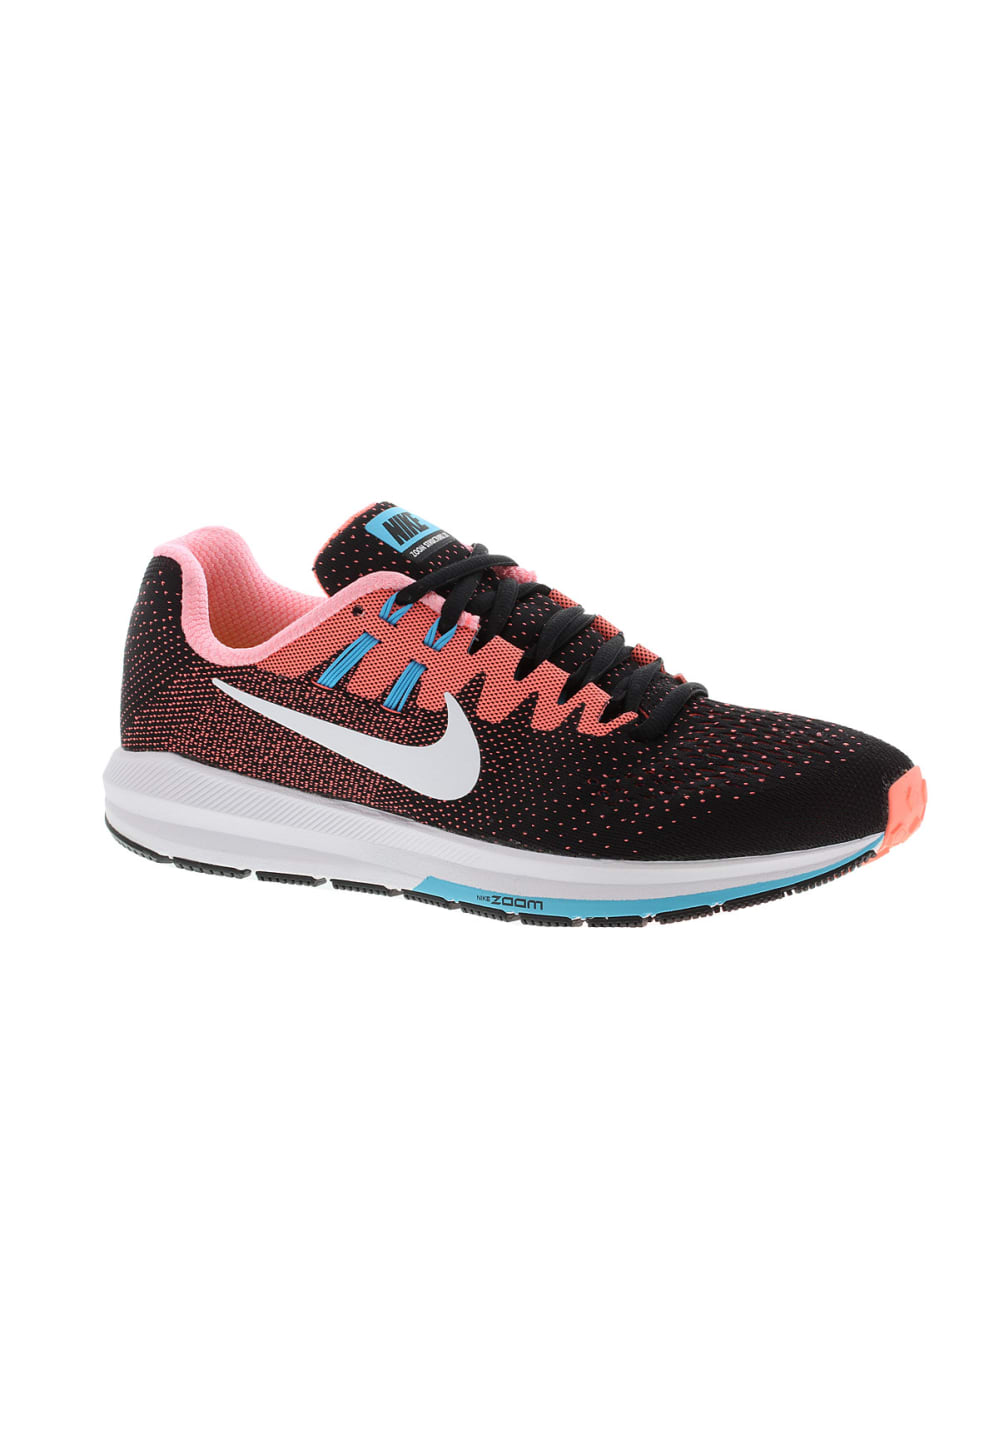 online store 96da7 caaa0 Nike Air Zoom Structure 20 - Running shoes for Women - Black